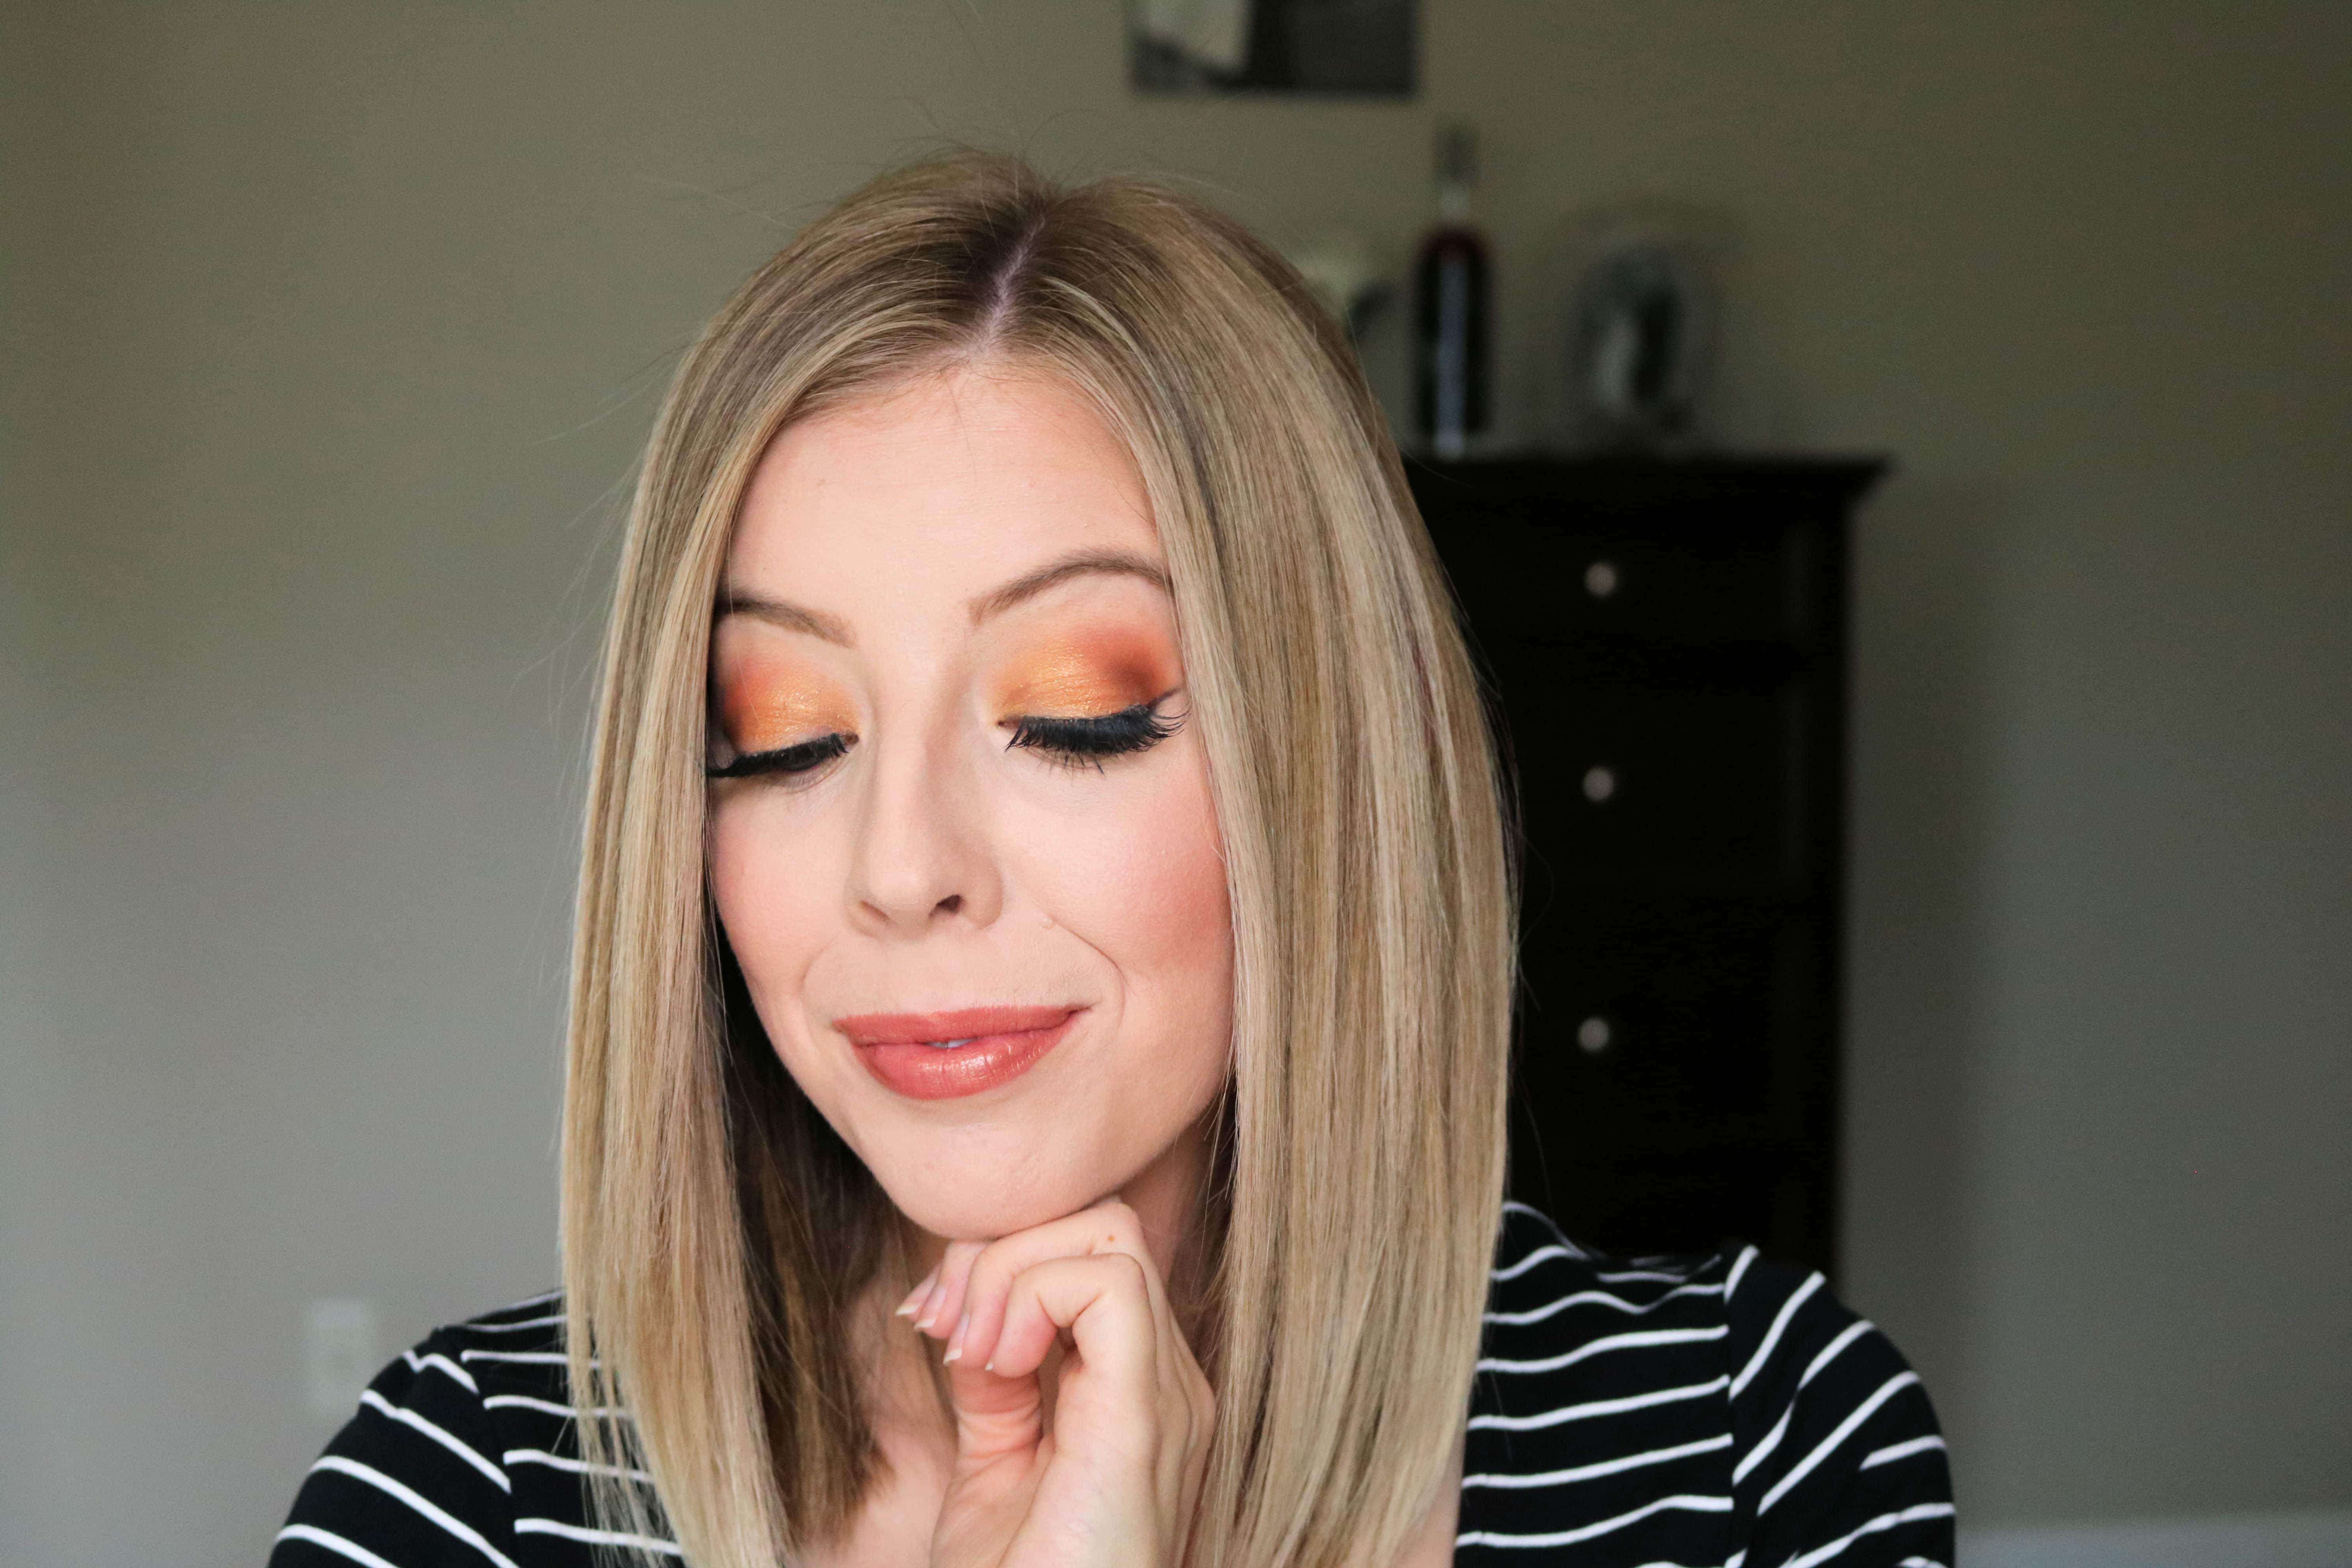 This orange eyeshadow look featuring orange, brown, and gold shades is perfect for Fall! Get the look with my easy eye makeup tutorial! #makeuptutorial #eyemakeup #fallmakeup #orangeeyeshadow